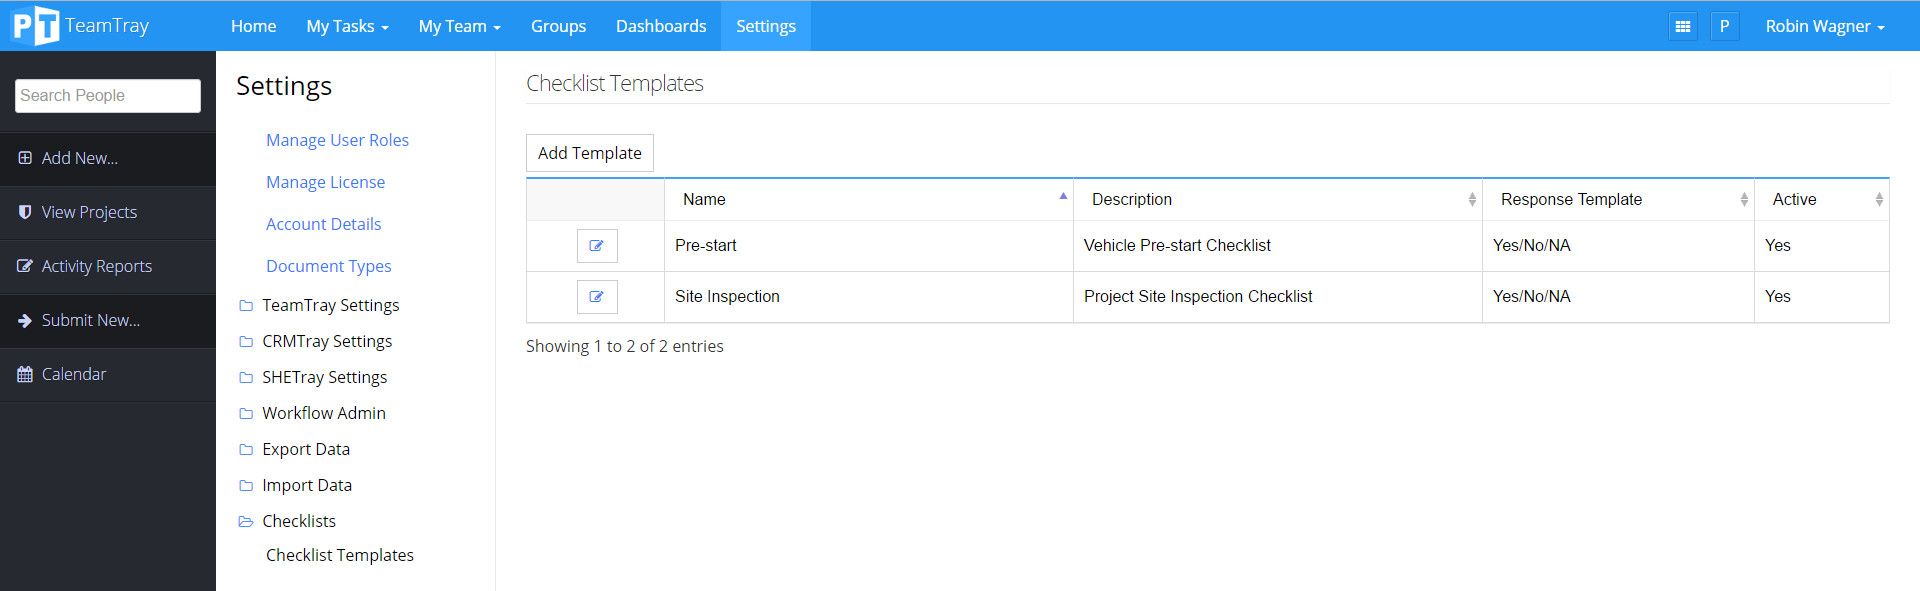 Configuring A New Checklist Template